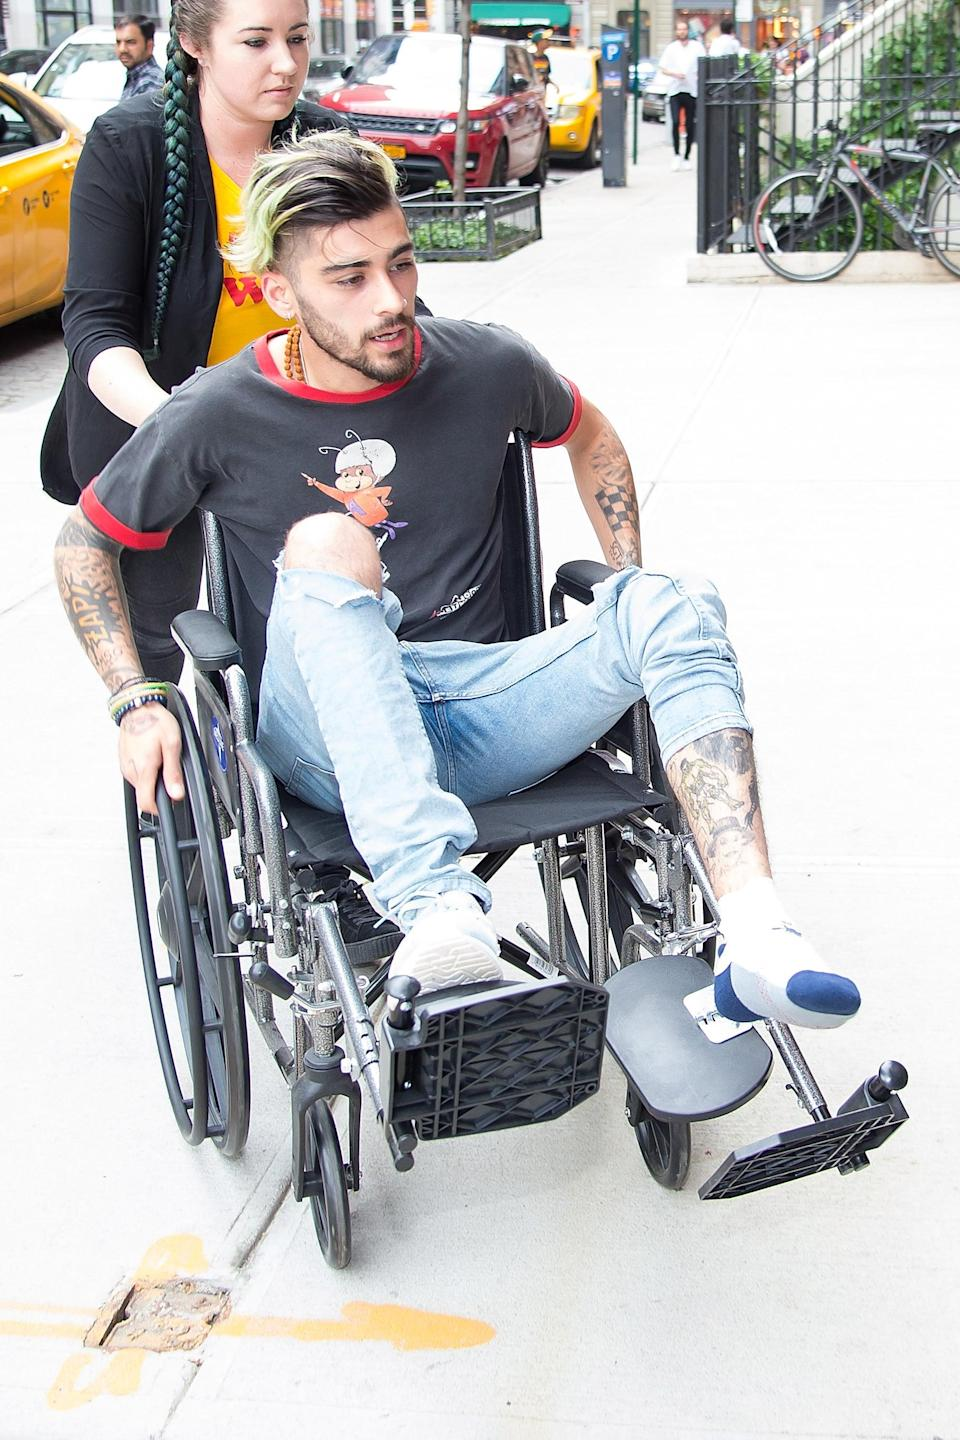 """<p>On Zayn Malik's left leg, he has a collection of comic book characters, including Deadpool and the Joker, as well as a wolf and feathers. He also has the name Rodger scrolled on his leg, which he <a href=""""https://twitter.com/zaynmalik/status/750756706335002624?lang=en"""" class=""""link rapid-noclick-resp"""" rel=""""nofollow noopener"""" target=""""_blank"""" data-ylk=""""slk:has joked is the name of his evil twin"""">has joked is the name of his evil twin</a>.</p>"""